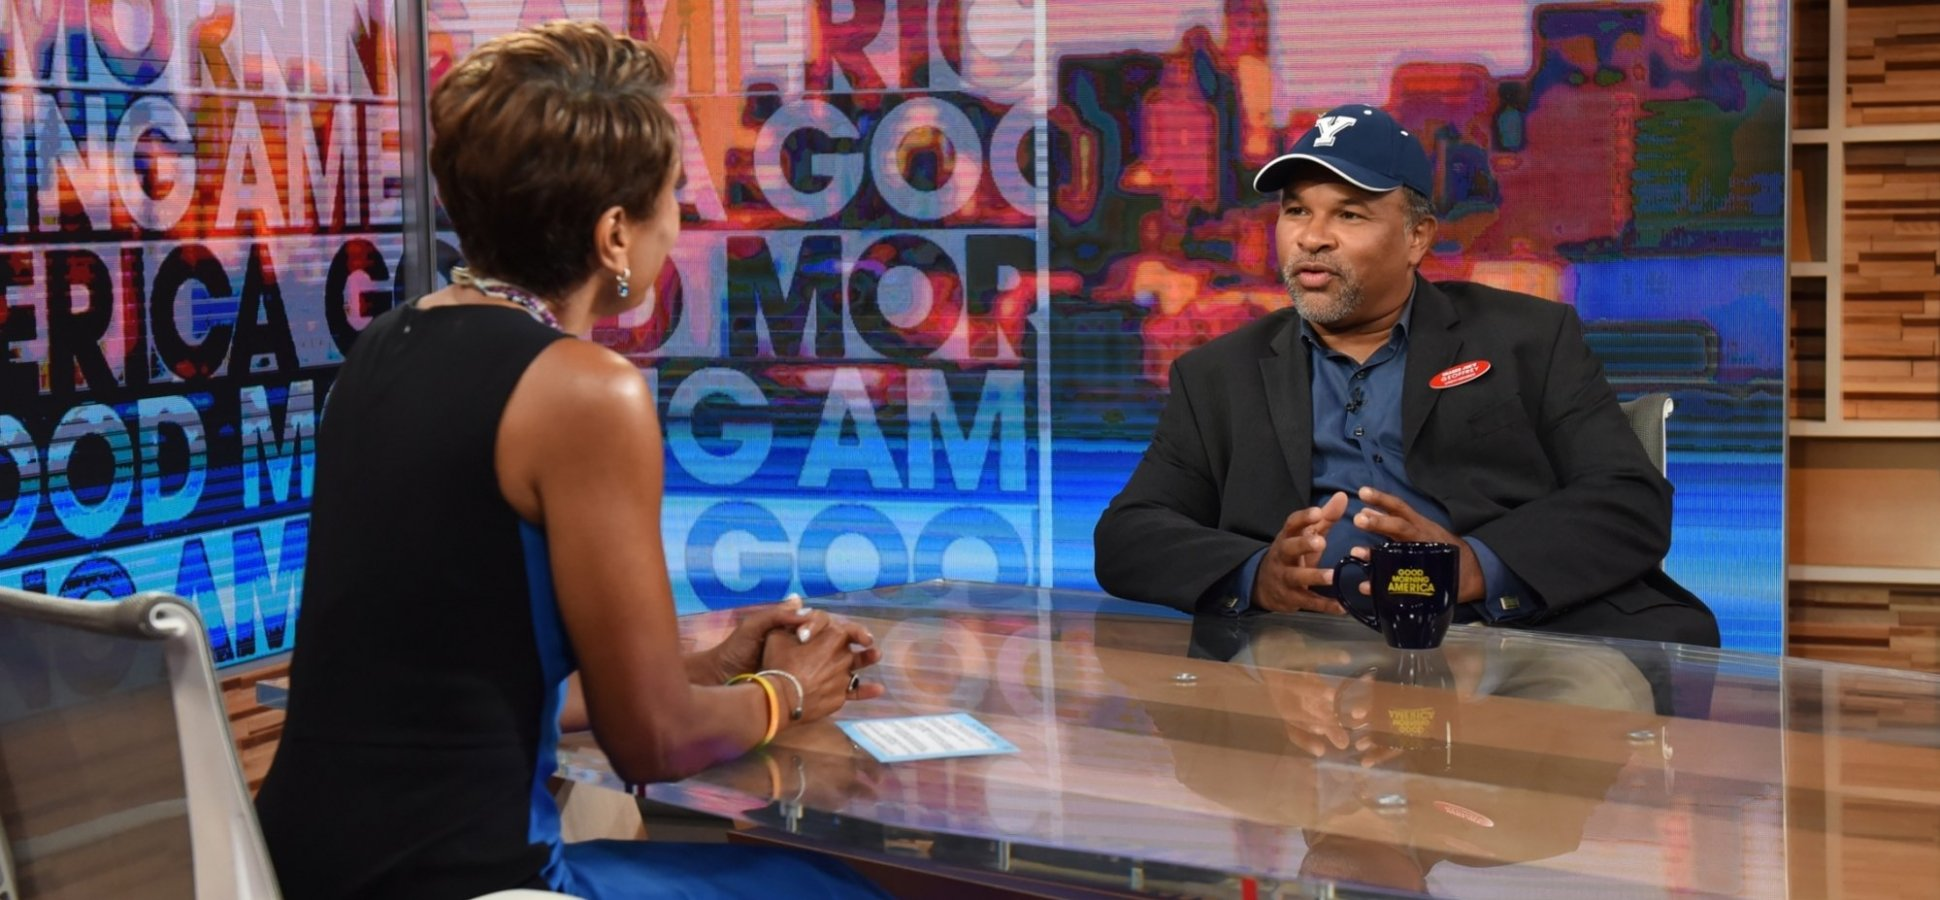 Did You Notice What the Ex-'Cosby Show' Actor Wore on 'Good Morning America'? (And I Don't Mean His Trader Joe's Name Tag)